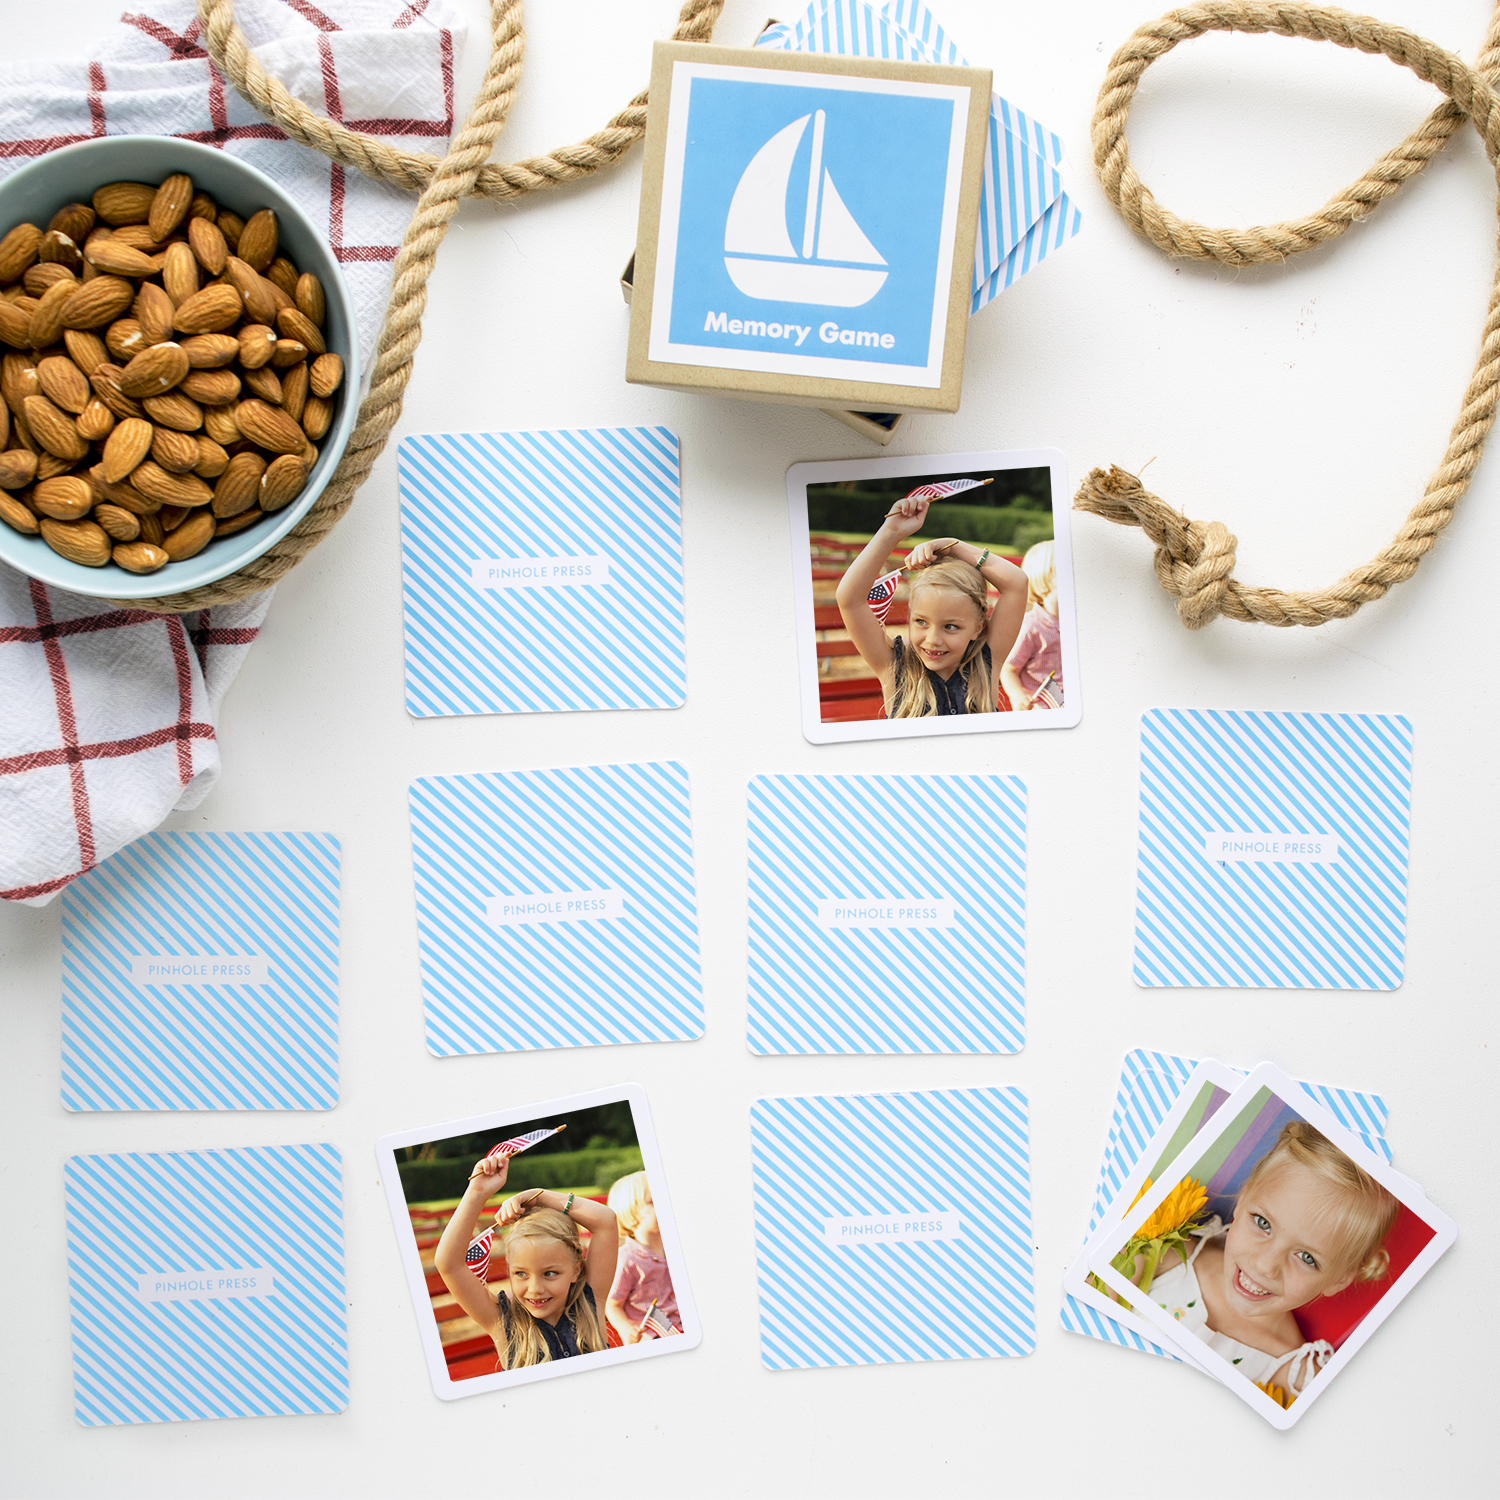 Sailboat-Memory-Game-Snacks.jpg